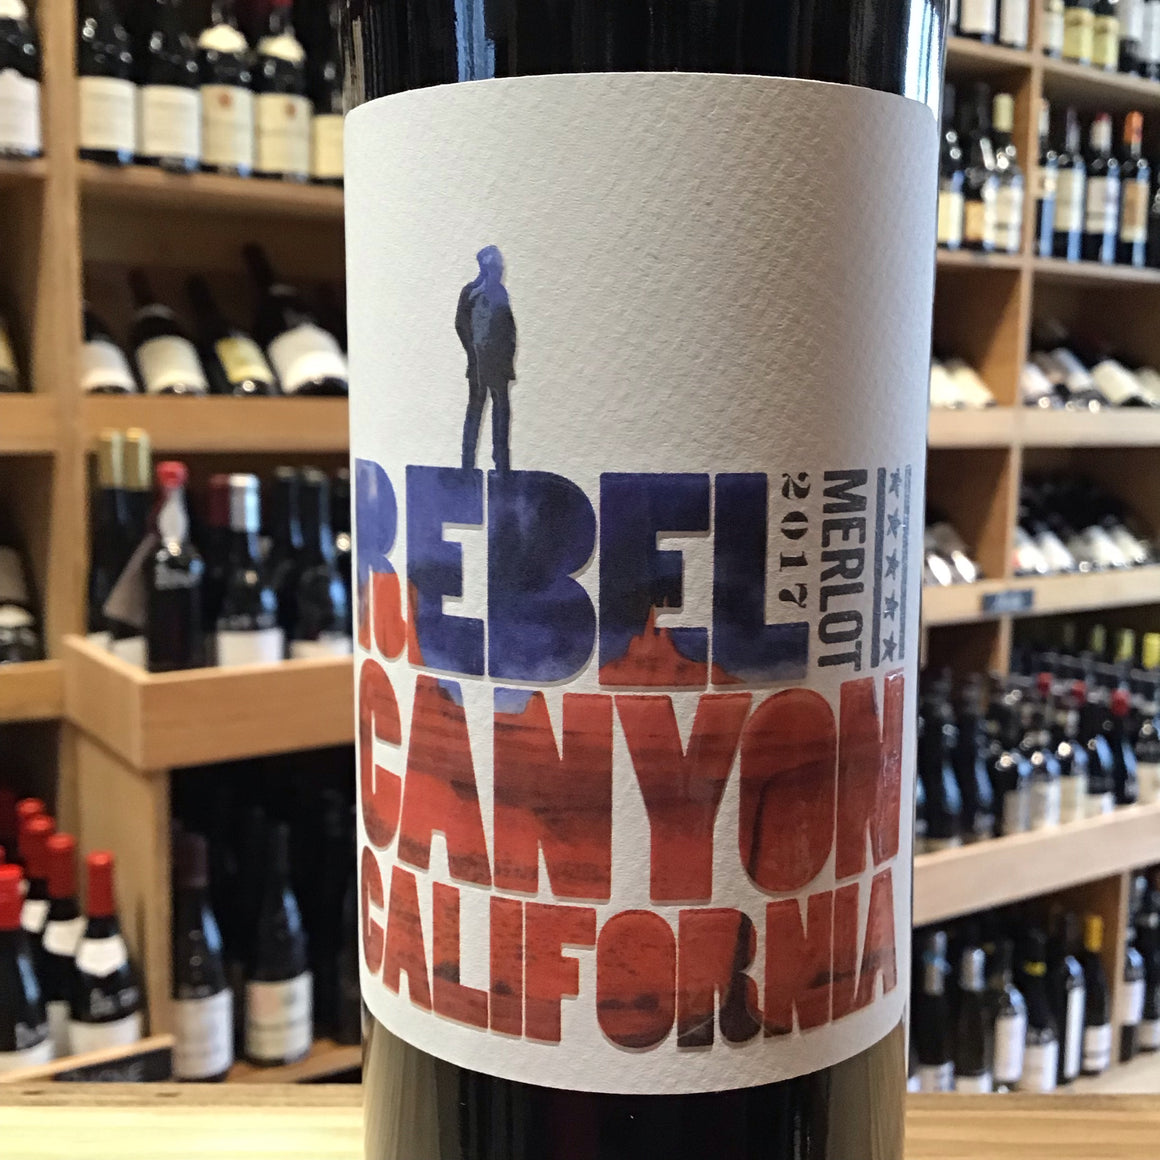 Rebel Canyon, Merlot 2017